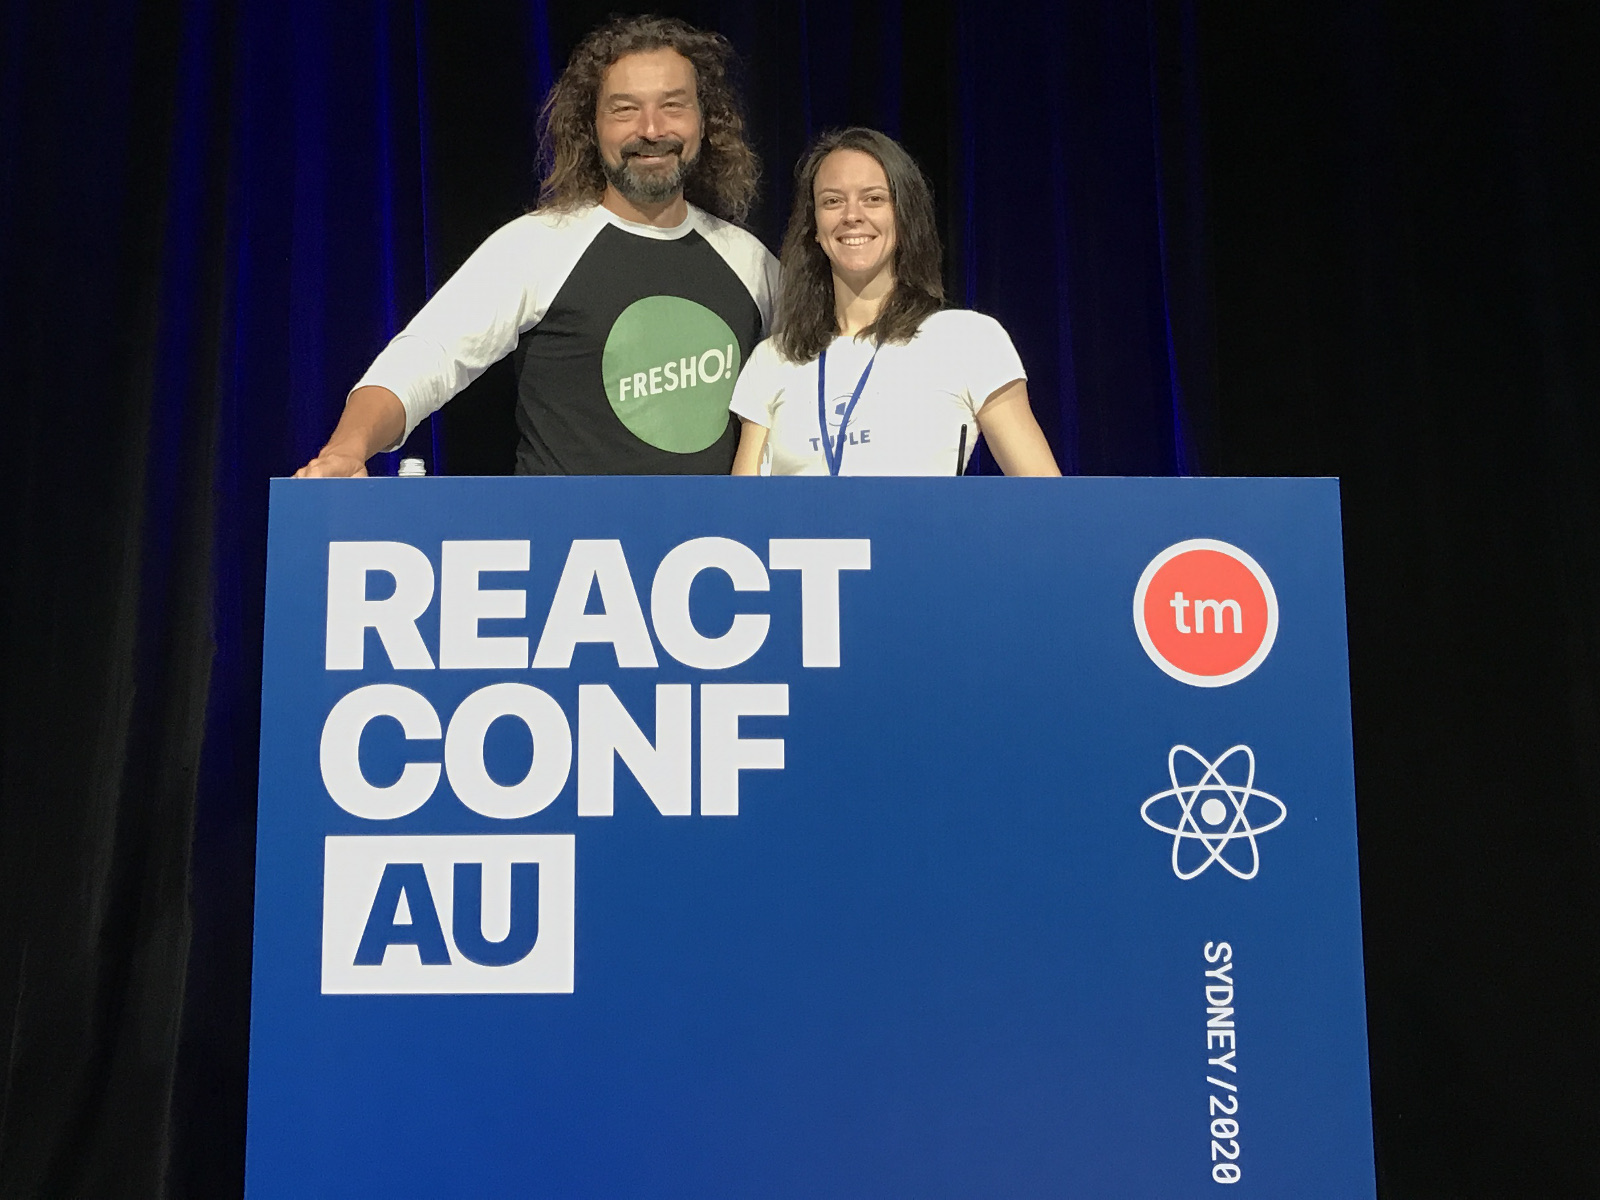 image from ReactConfAU 2020